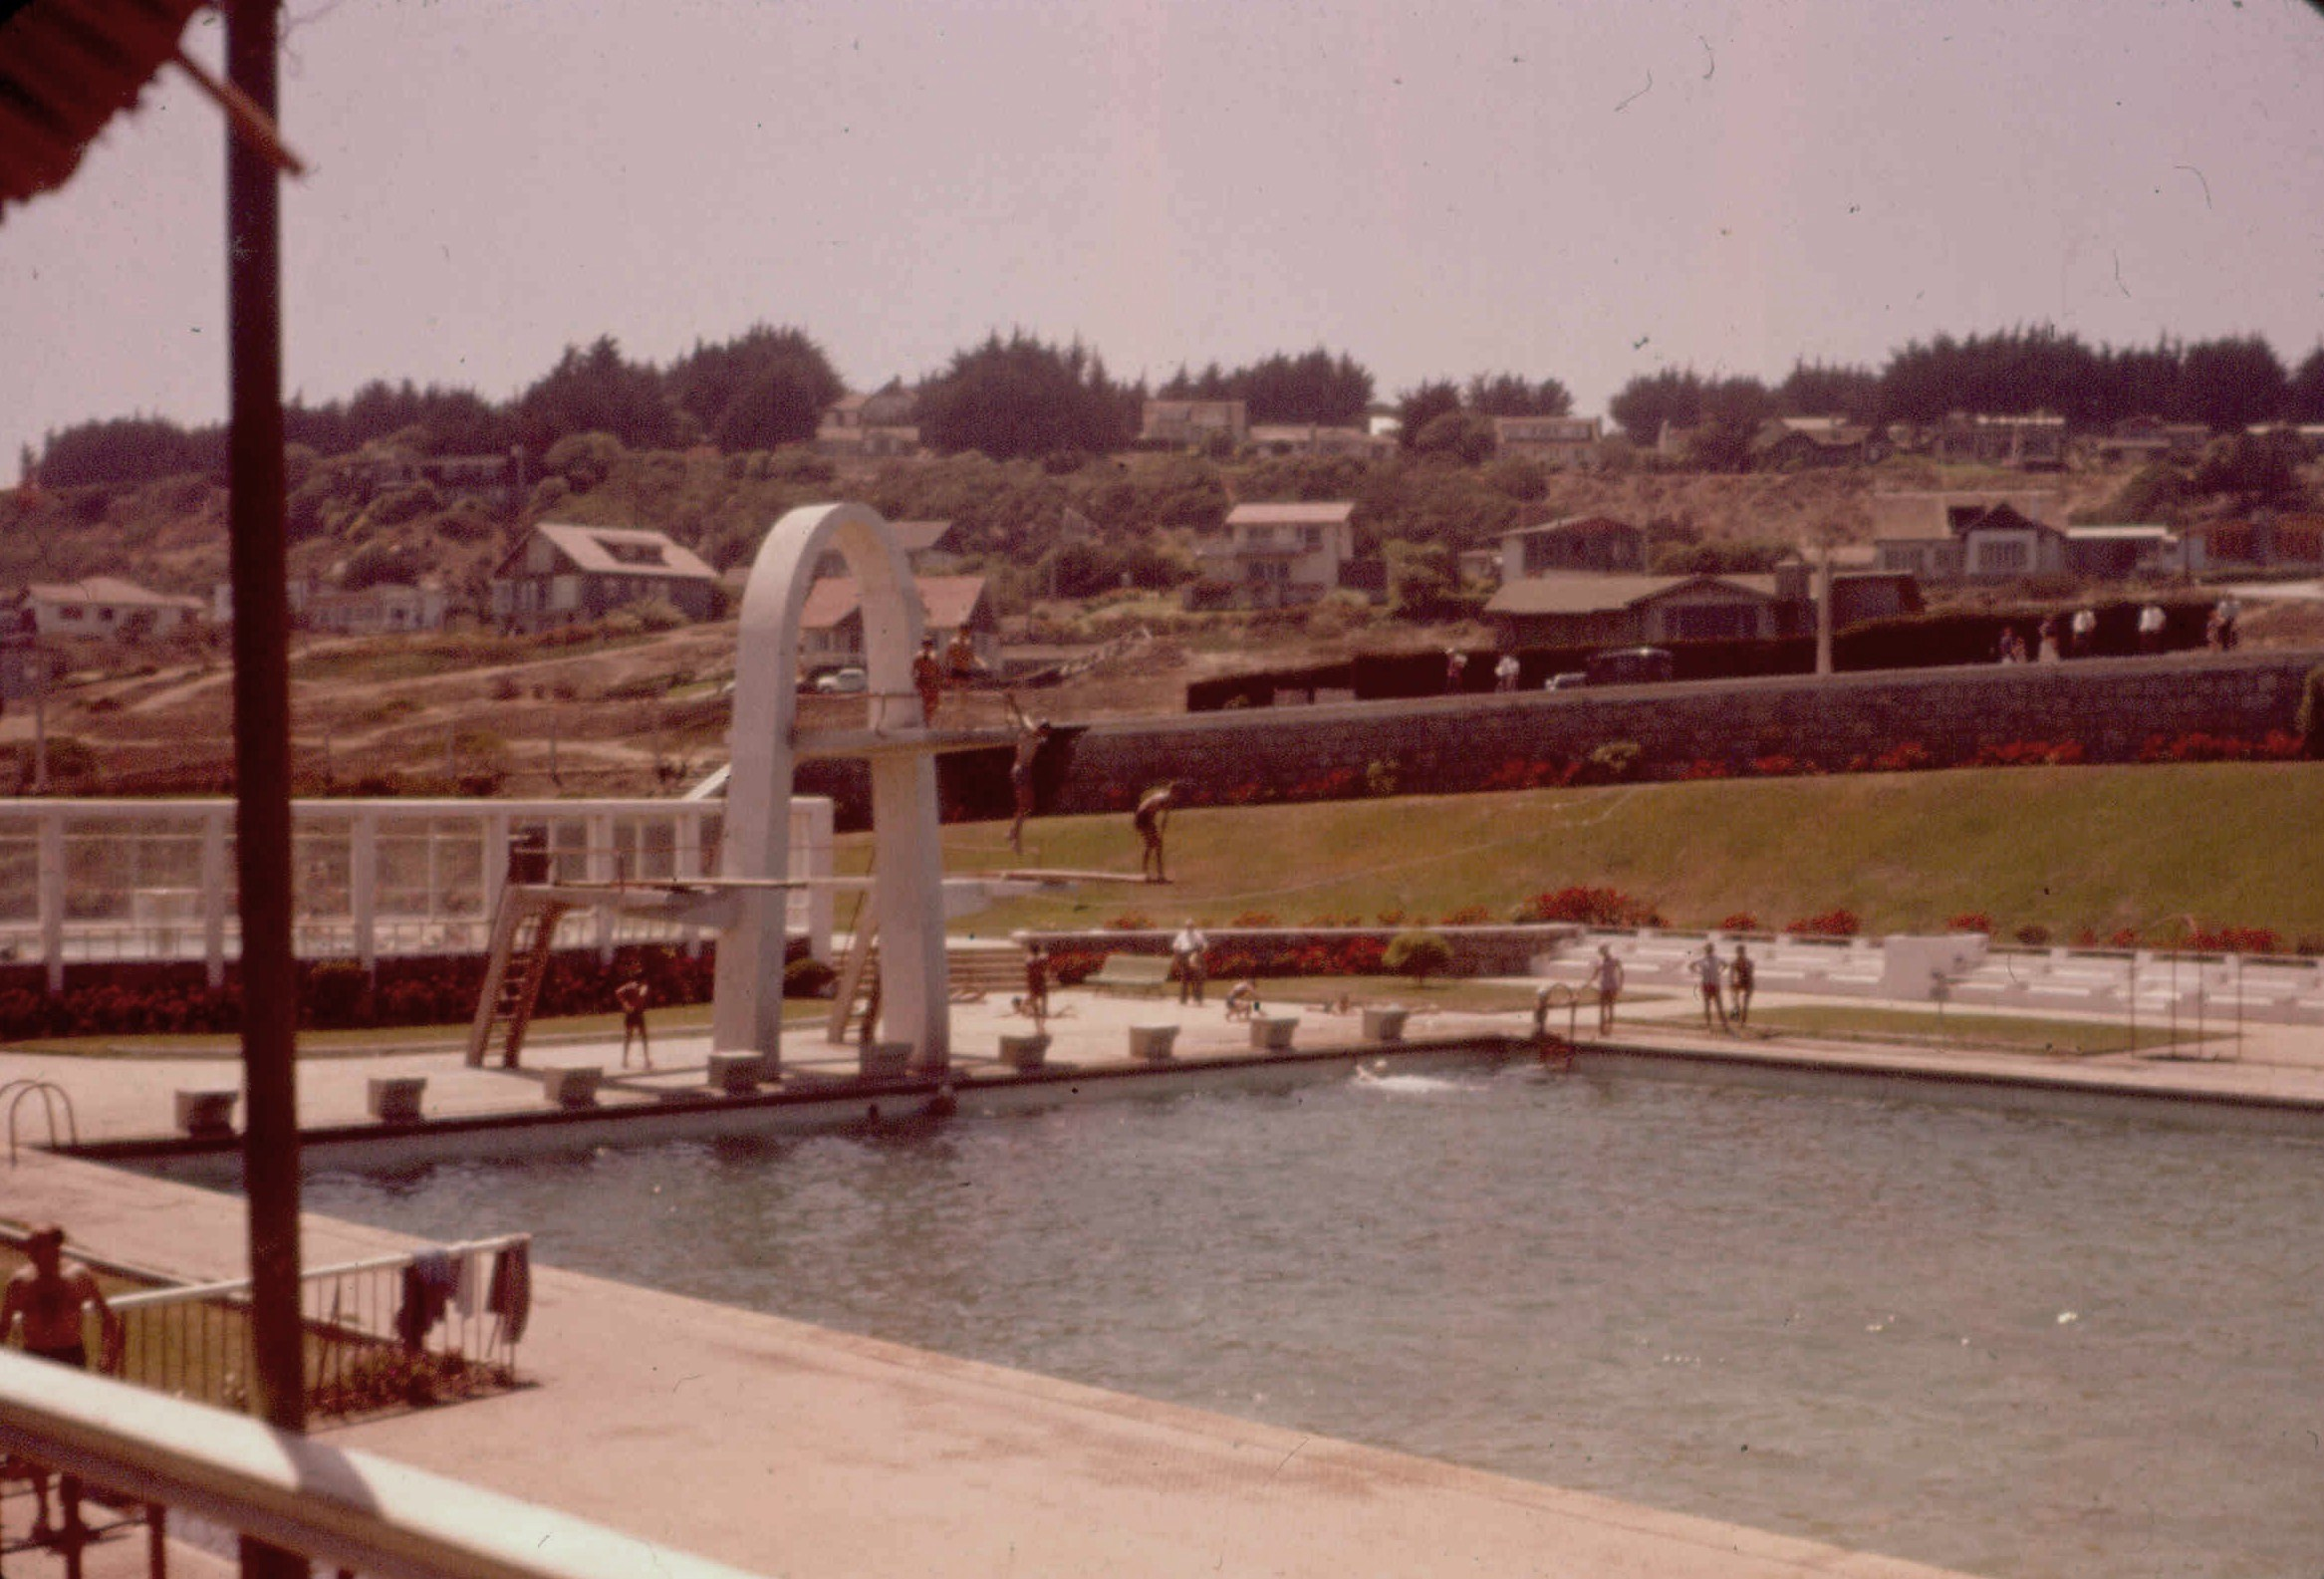 Enterreno - Fotos históricas de chile - fotos antiguas de Chile - Piscina de Rocas de Santo Domingo en 1959